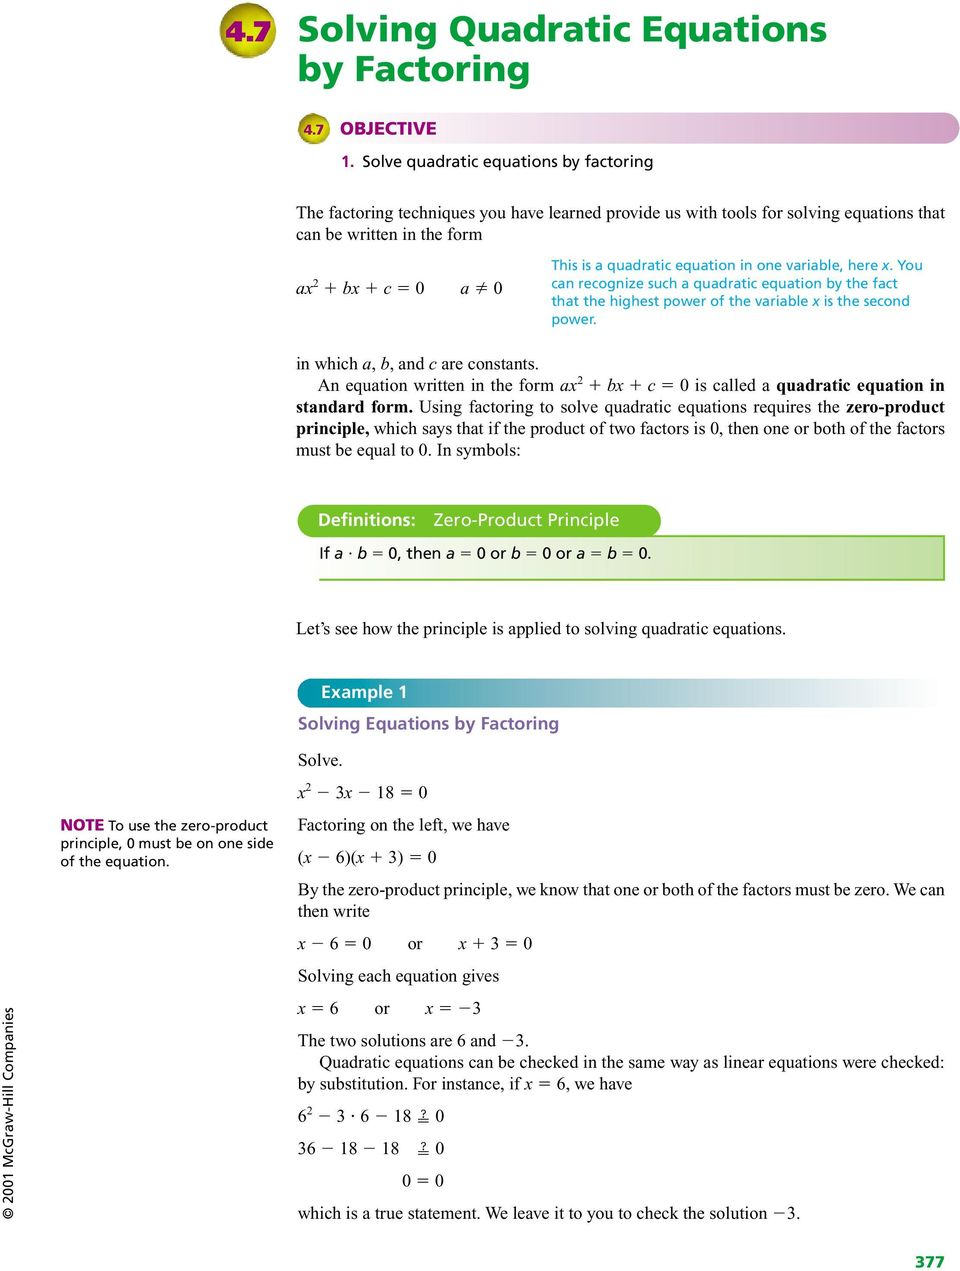 worksheet Solving Quadratic Equations By Factoring Worksheet Answers solving quadratic equations by factoring worksheet answers bhbr info answers